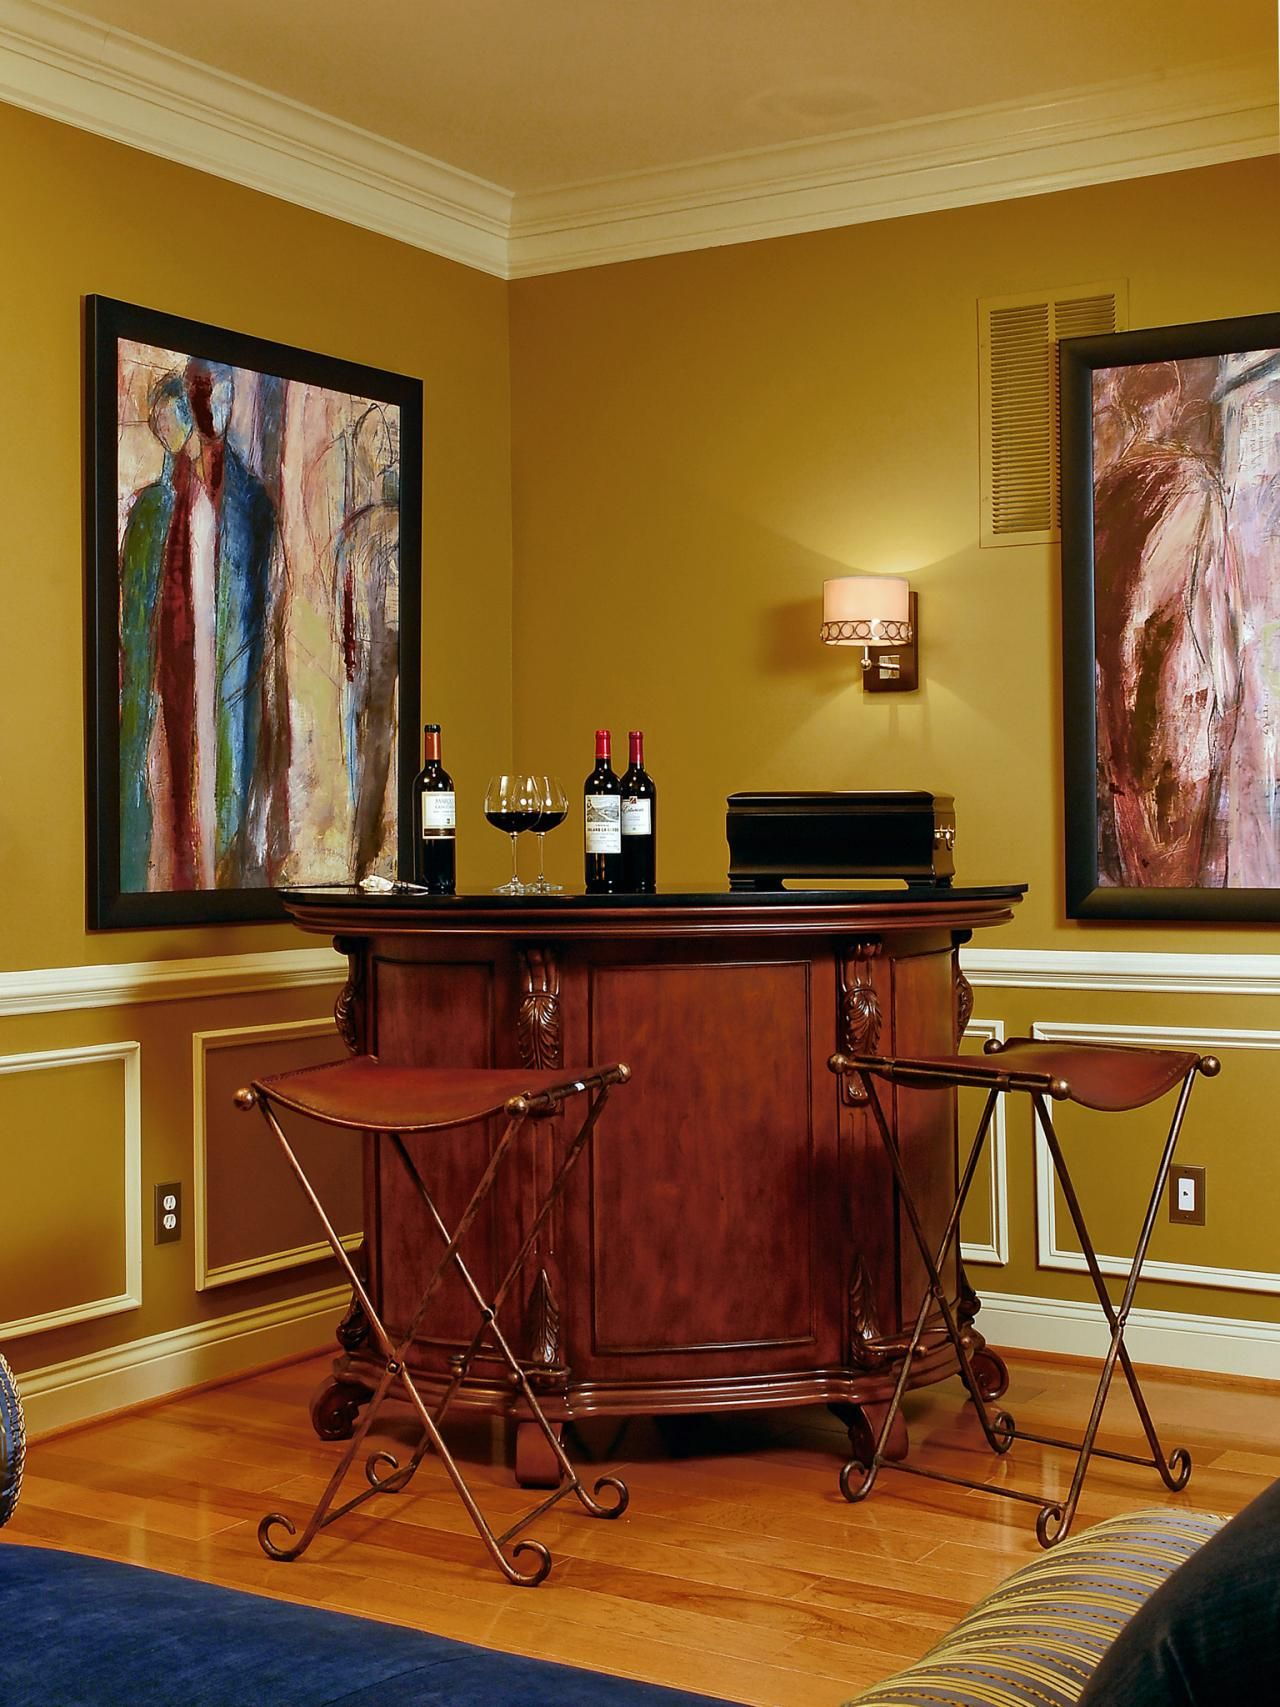 Living Room Bars A Beautiful Wood Stand Alone Bar Graces One Corner Of This Living